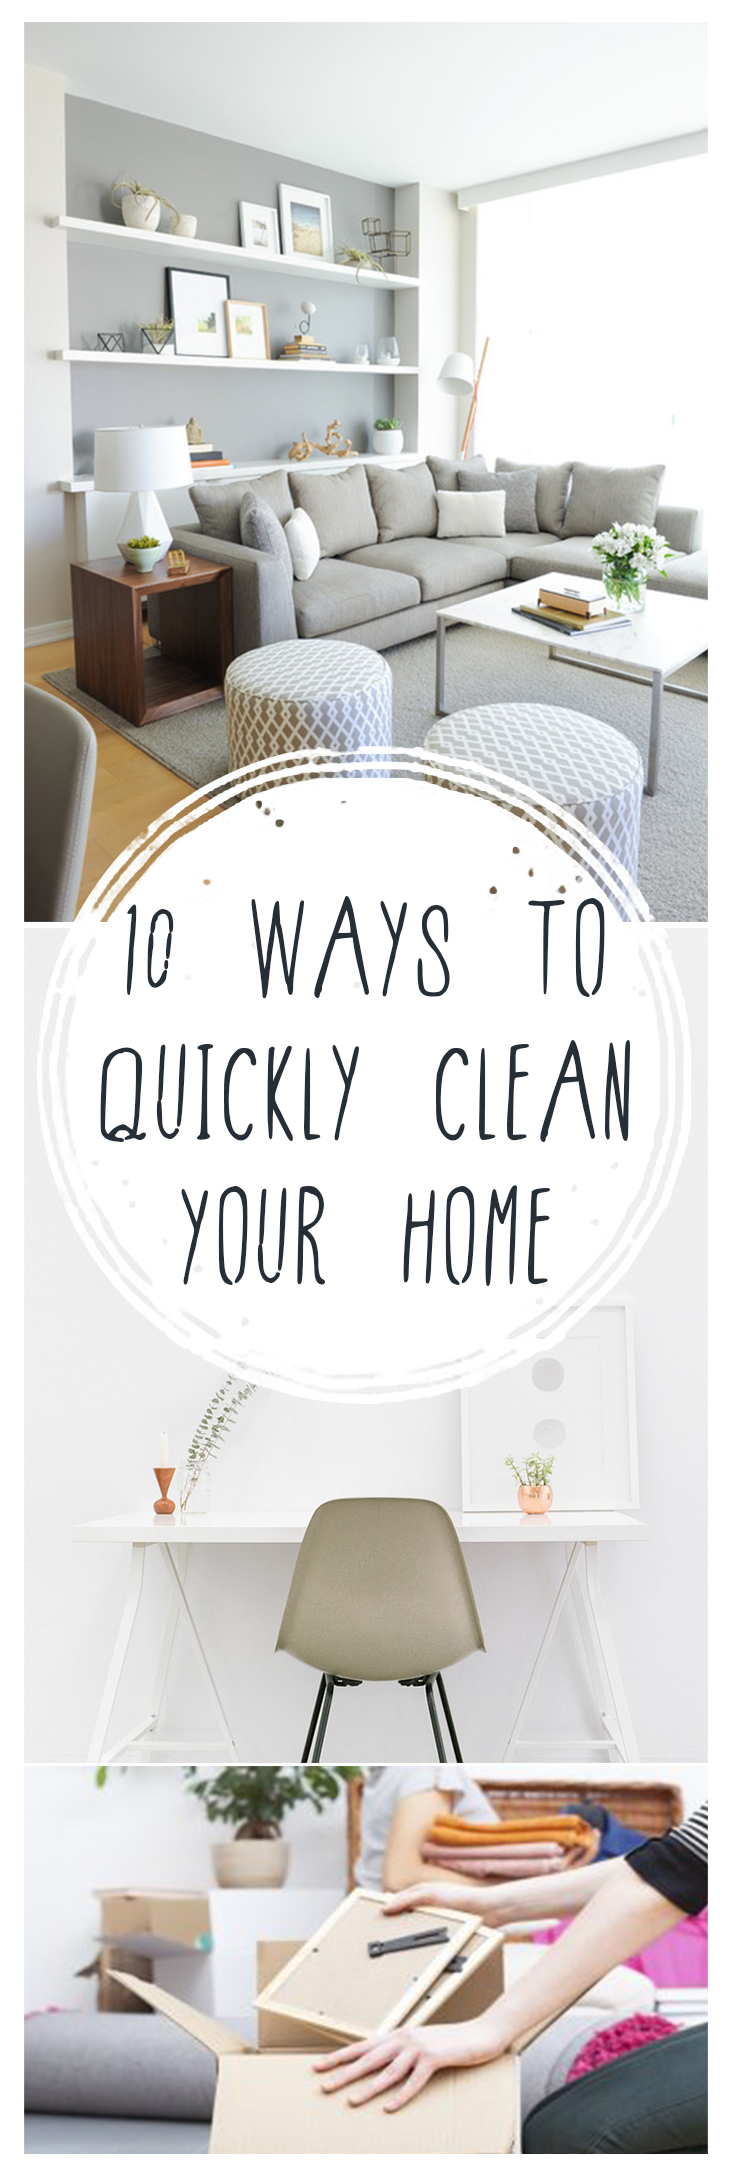 Cleaning, cleaning hacks, cleaning products, easy cleaning, popular pin, quick cleaning hacks, easy cleaning tips, clean home.